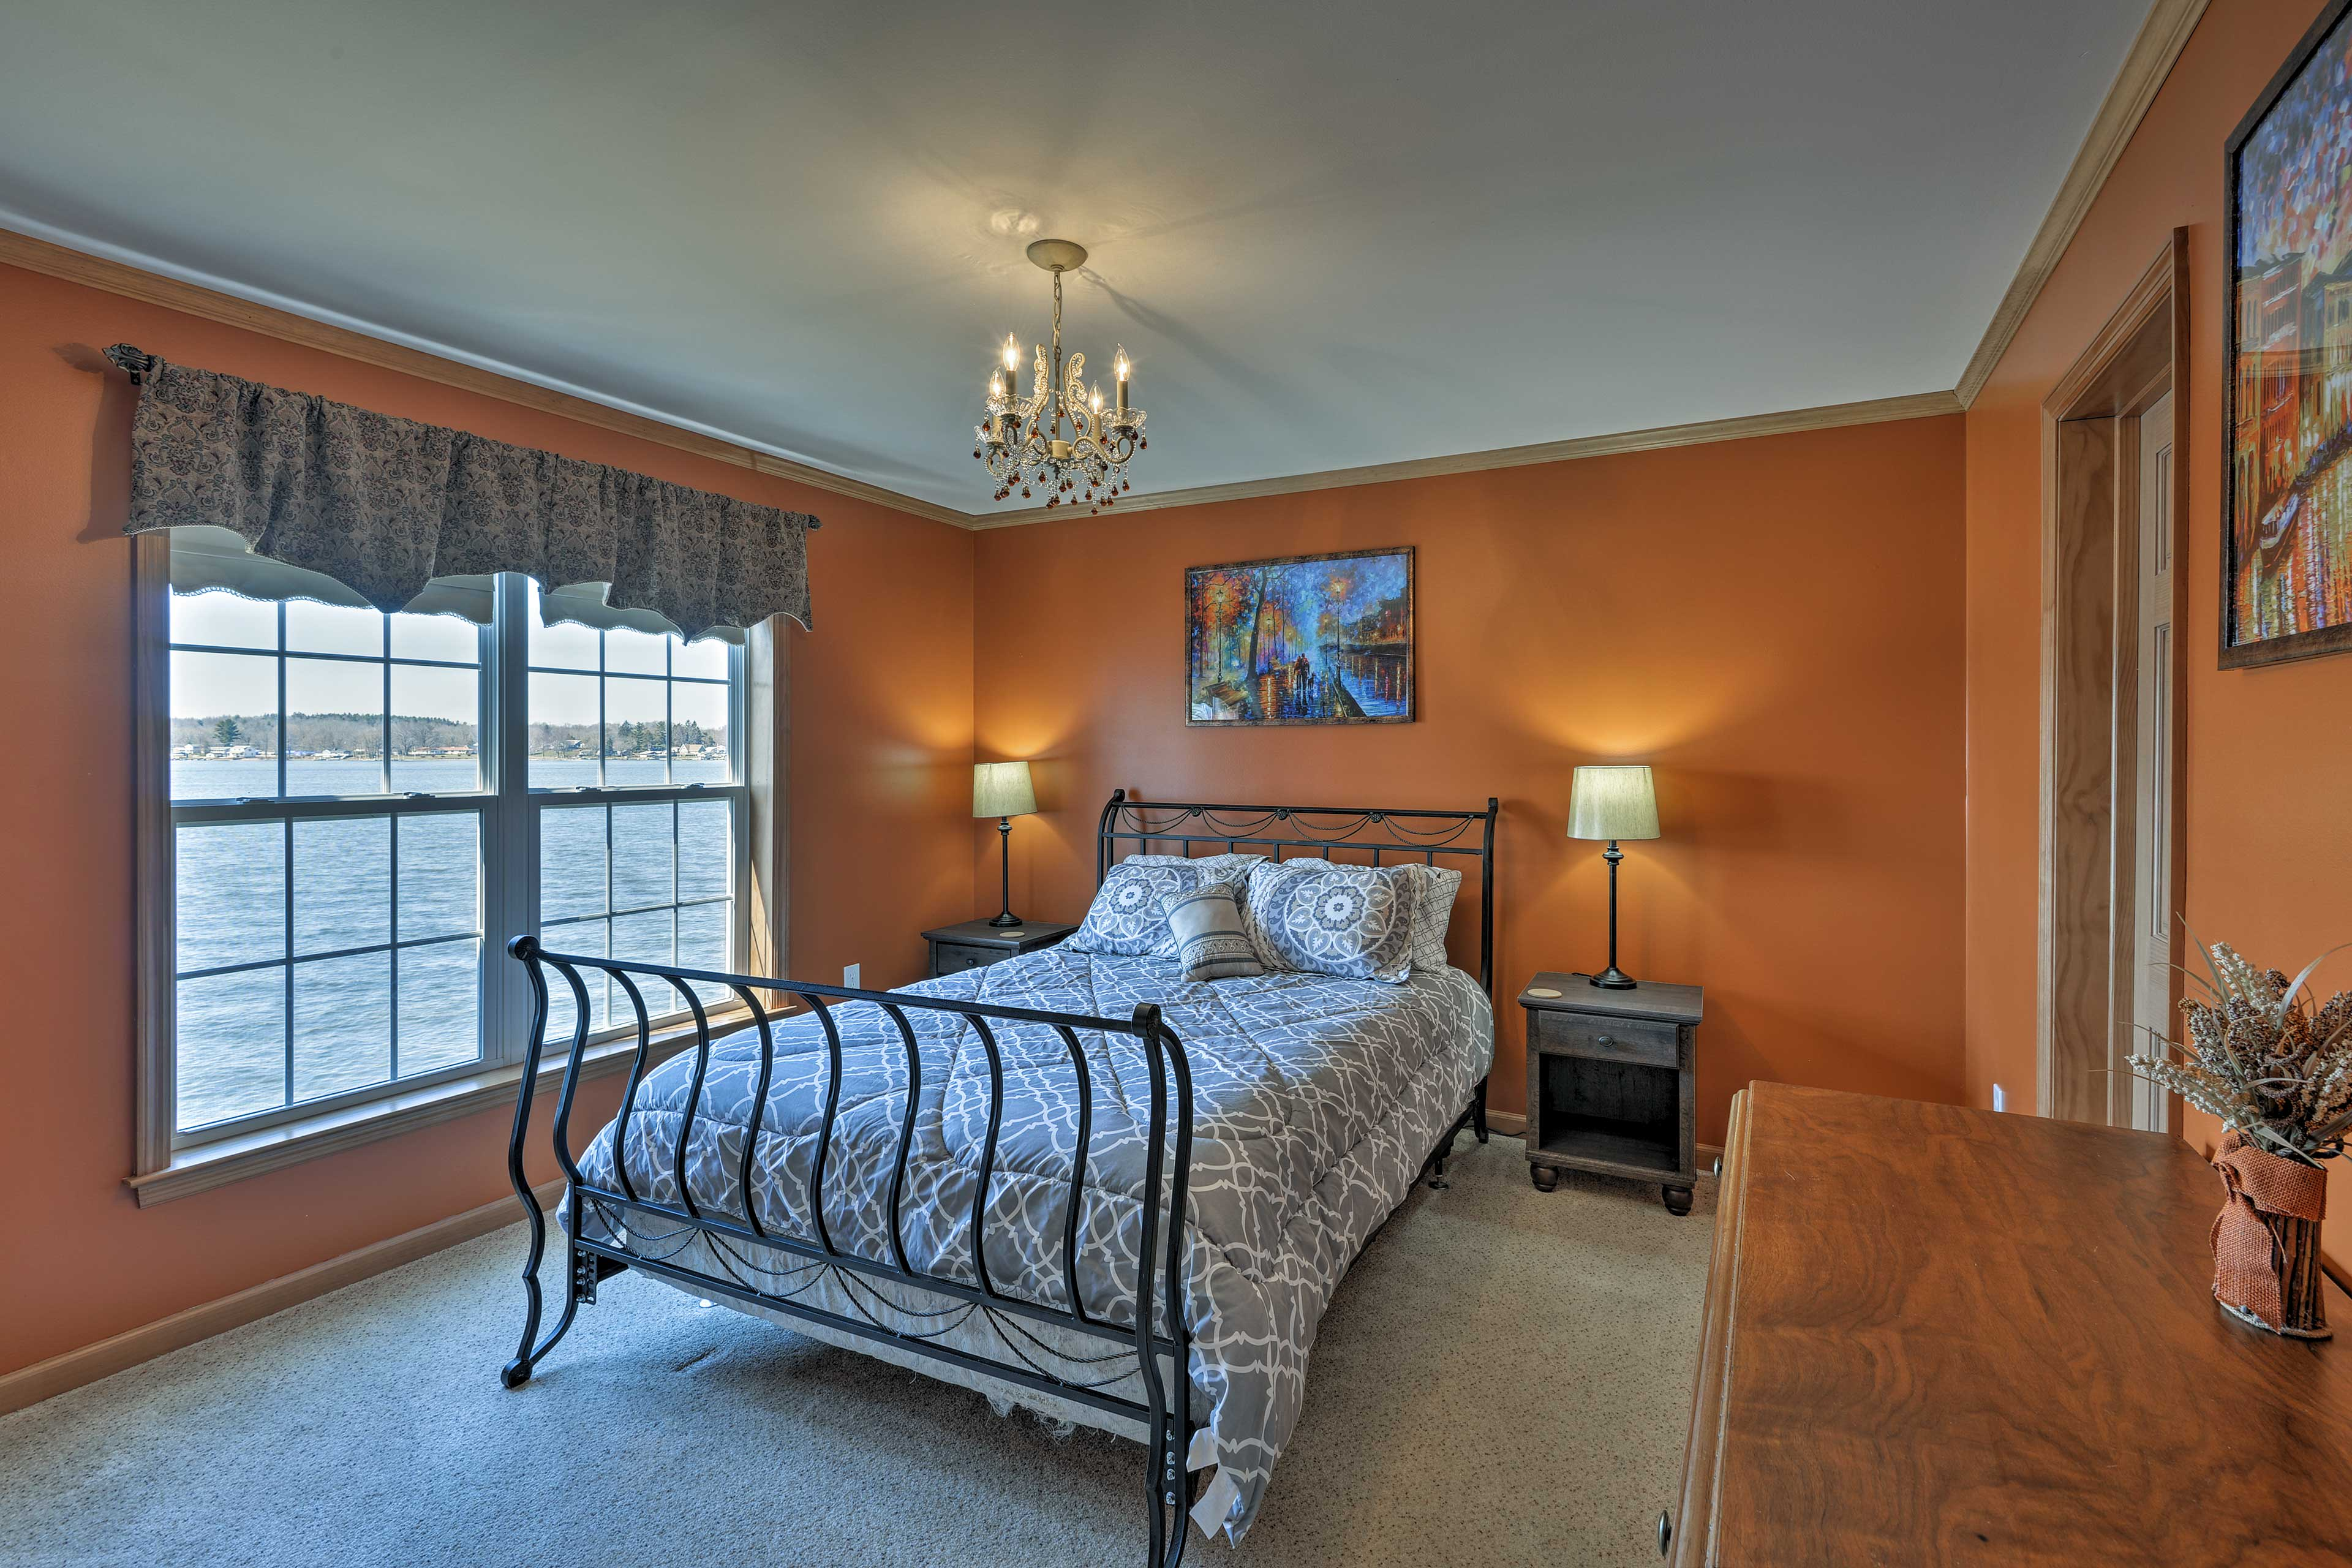 Rest your head on the queen bed in the first bedroom.